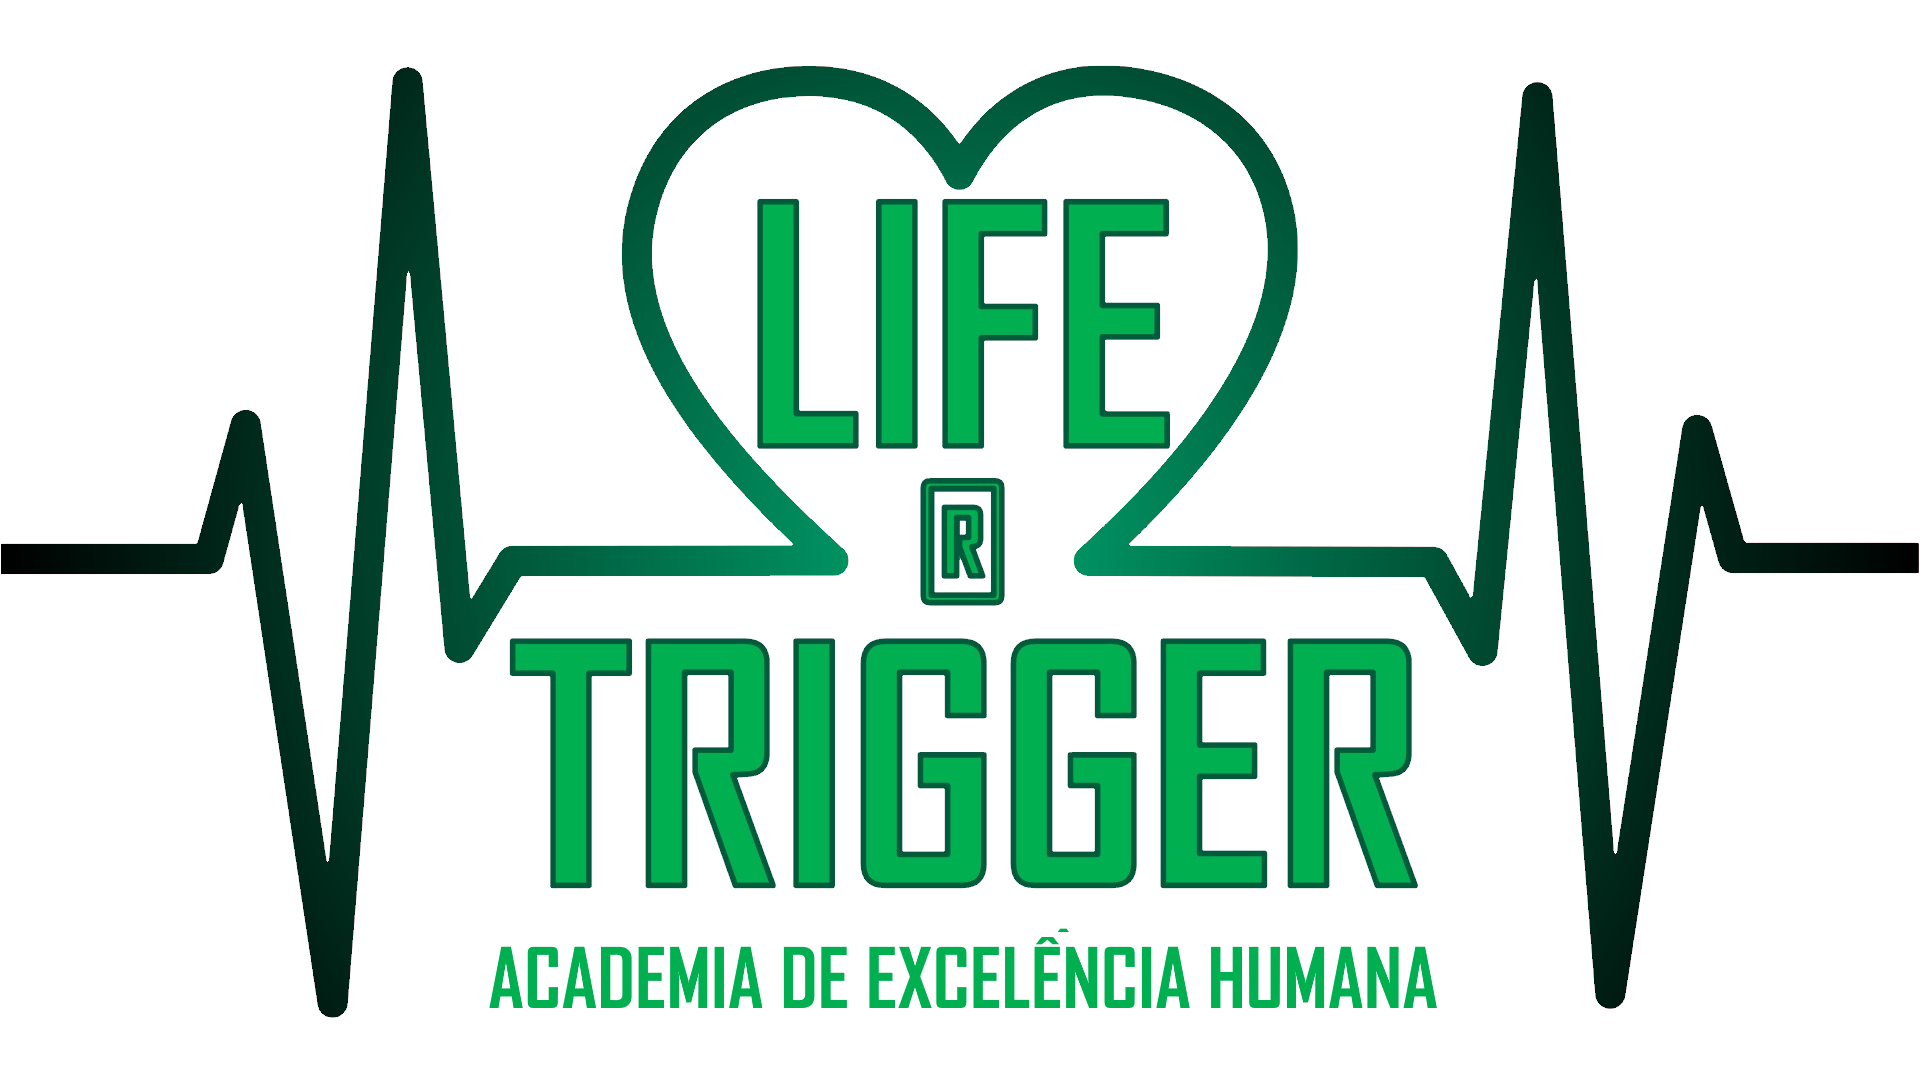 Logotipo Lifetrigger